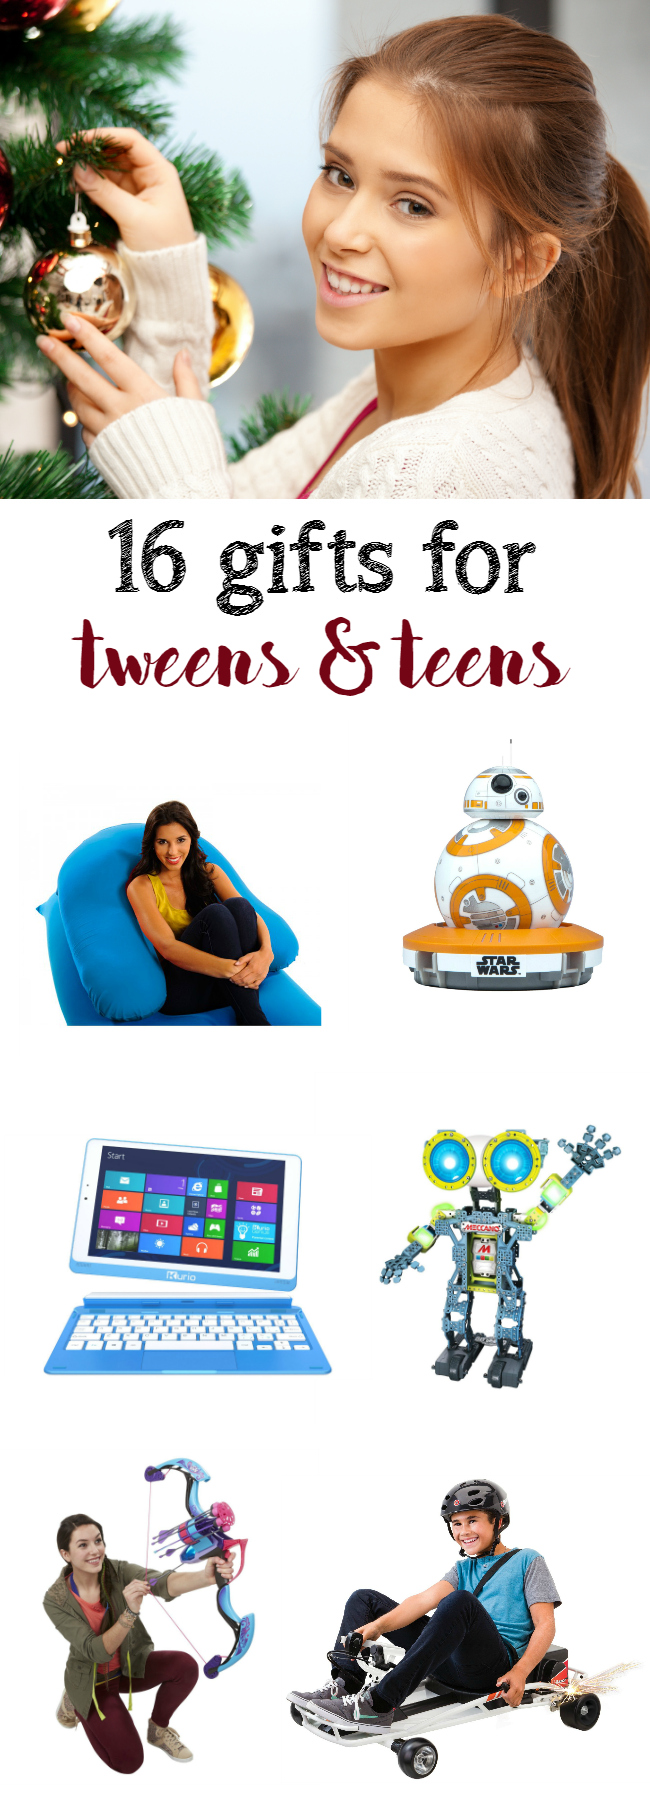 16 gifts for tweens and teens